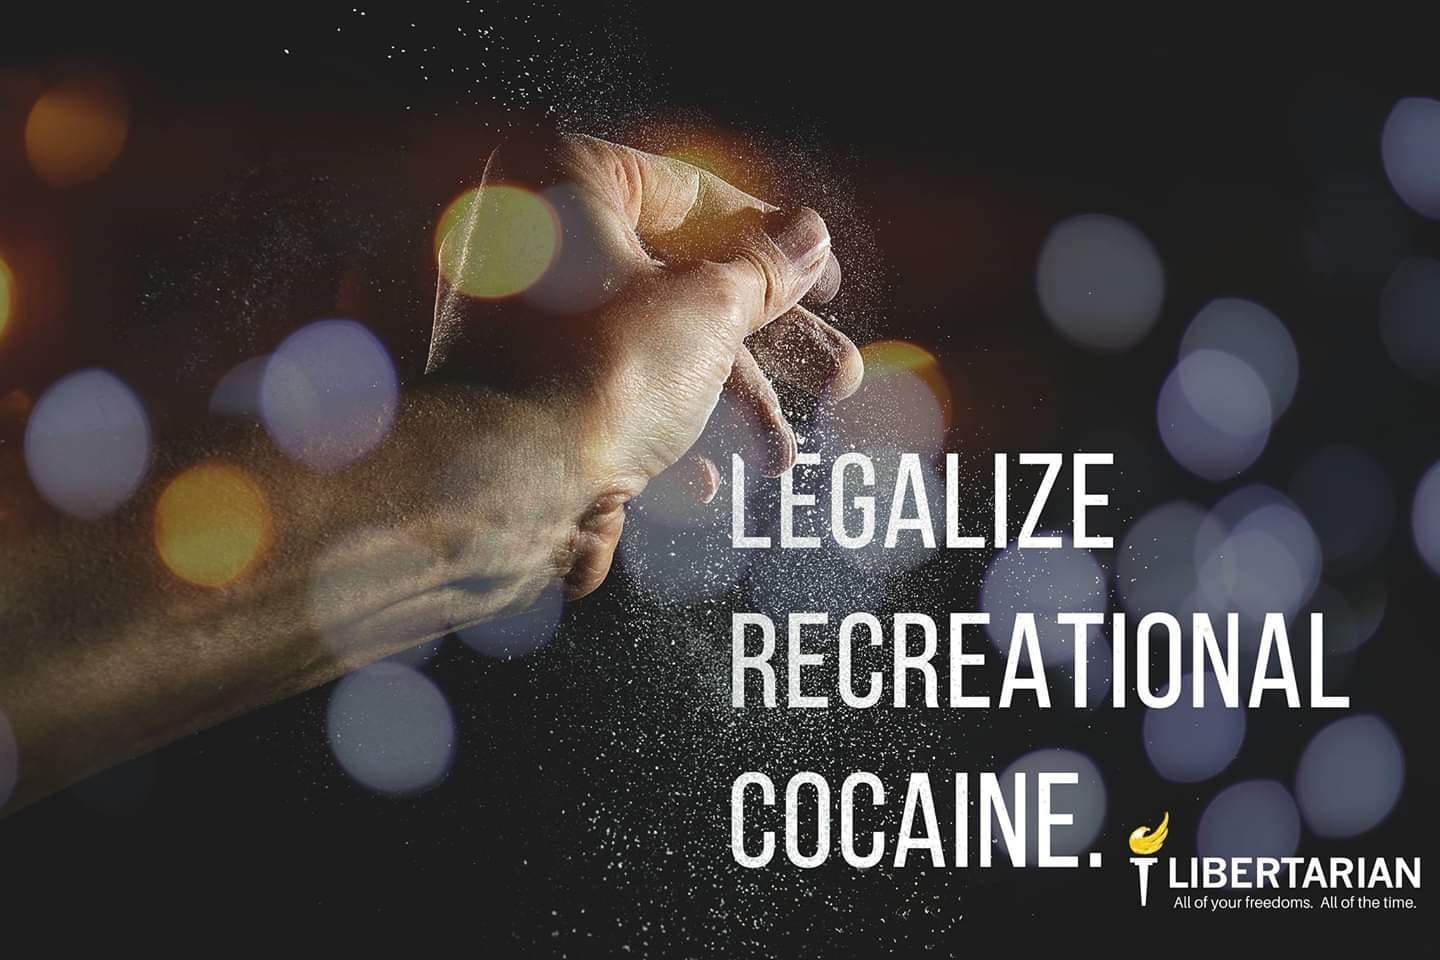 The Backstory Behind The Legalize Recreational Cocaine Meme